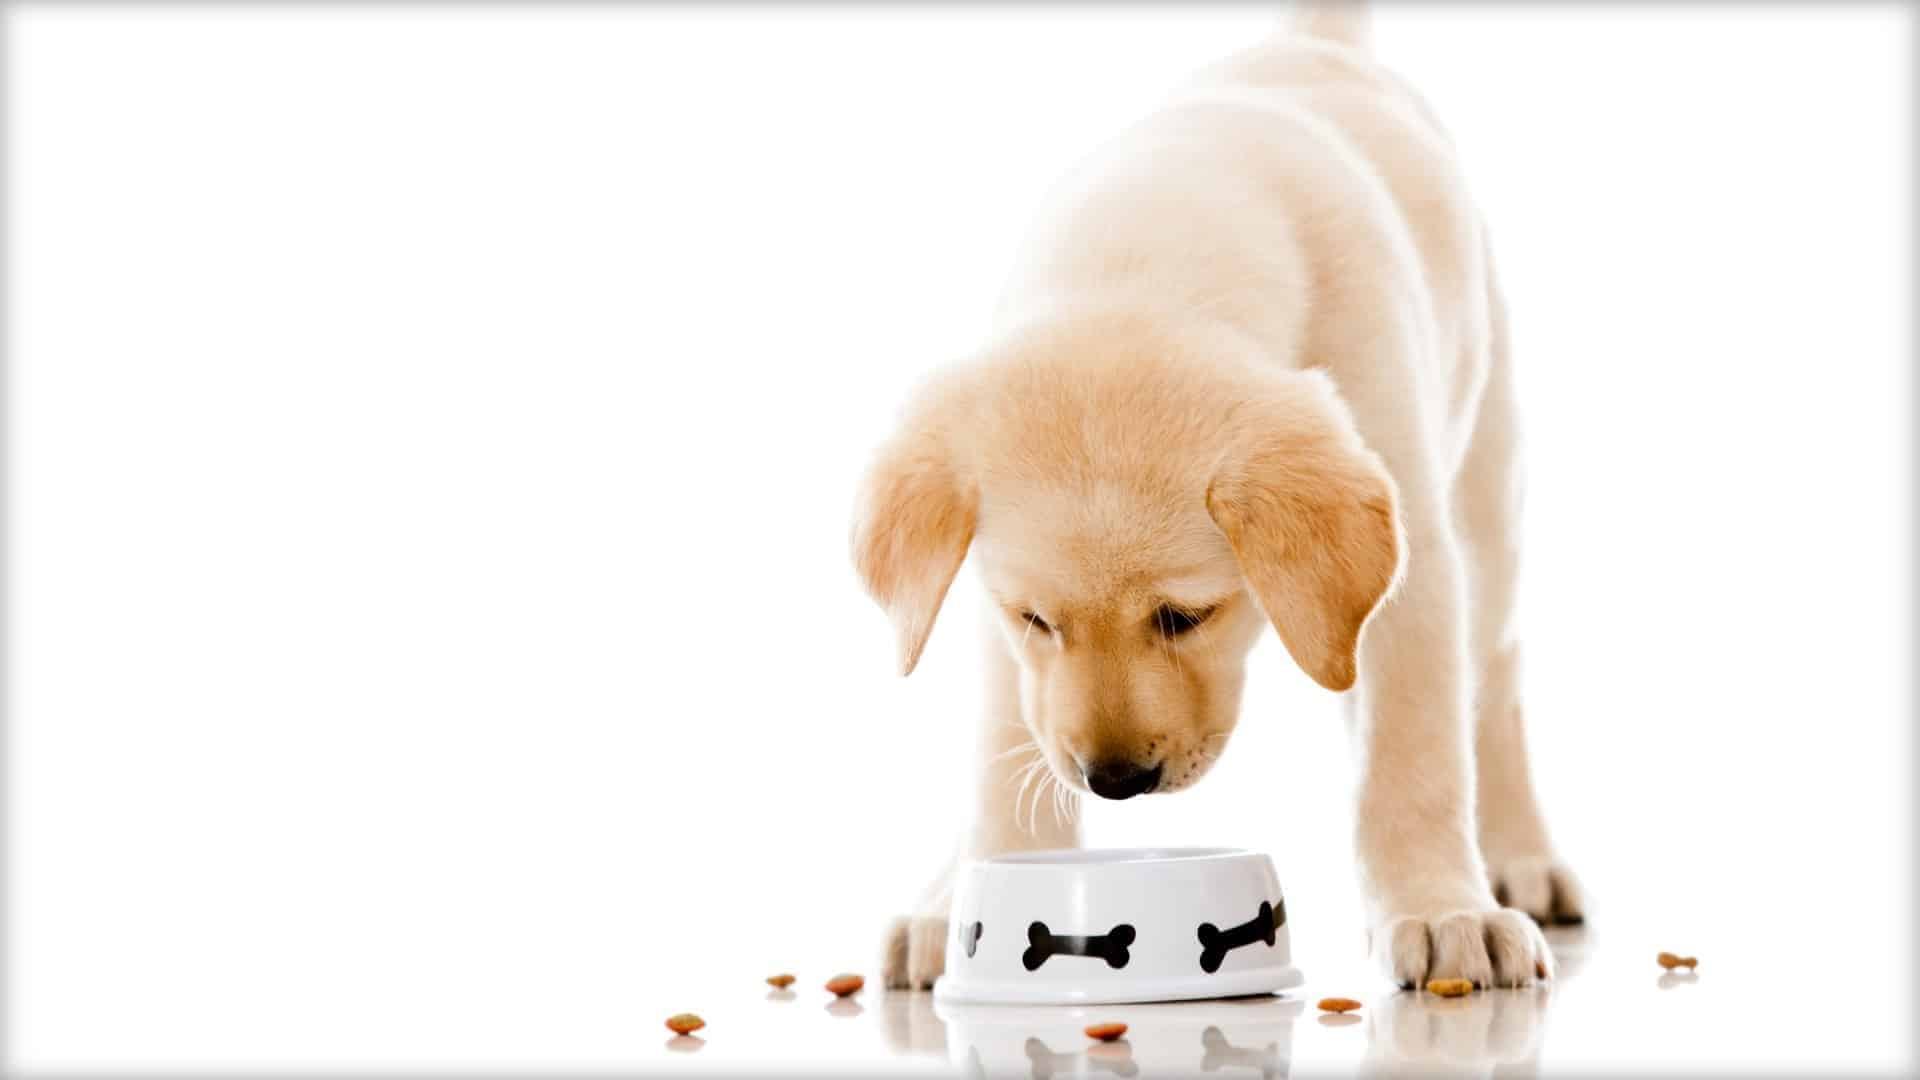 A beautiful puppy is shown looking down at its food bowl